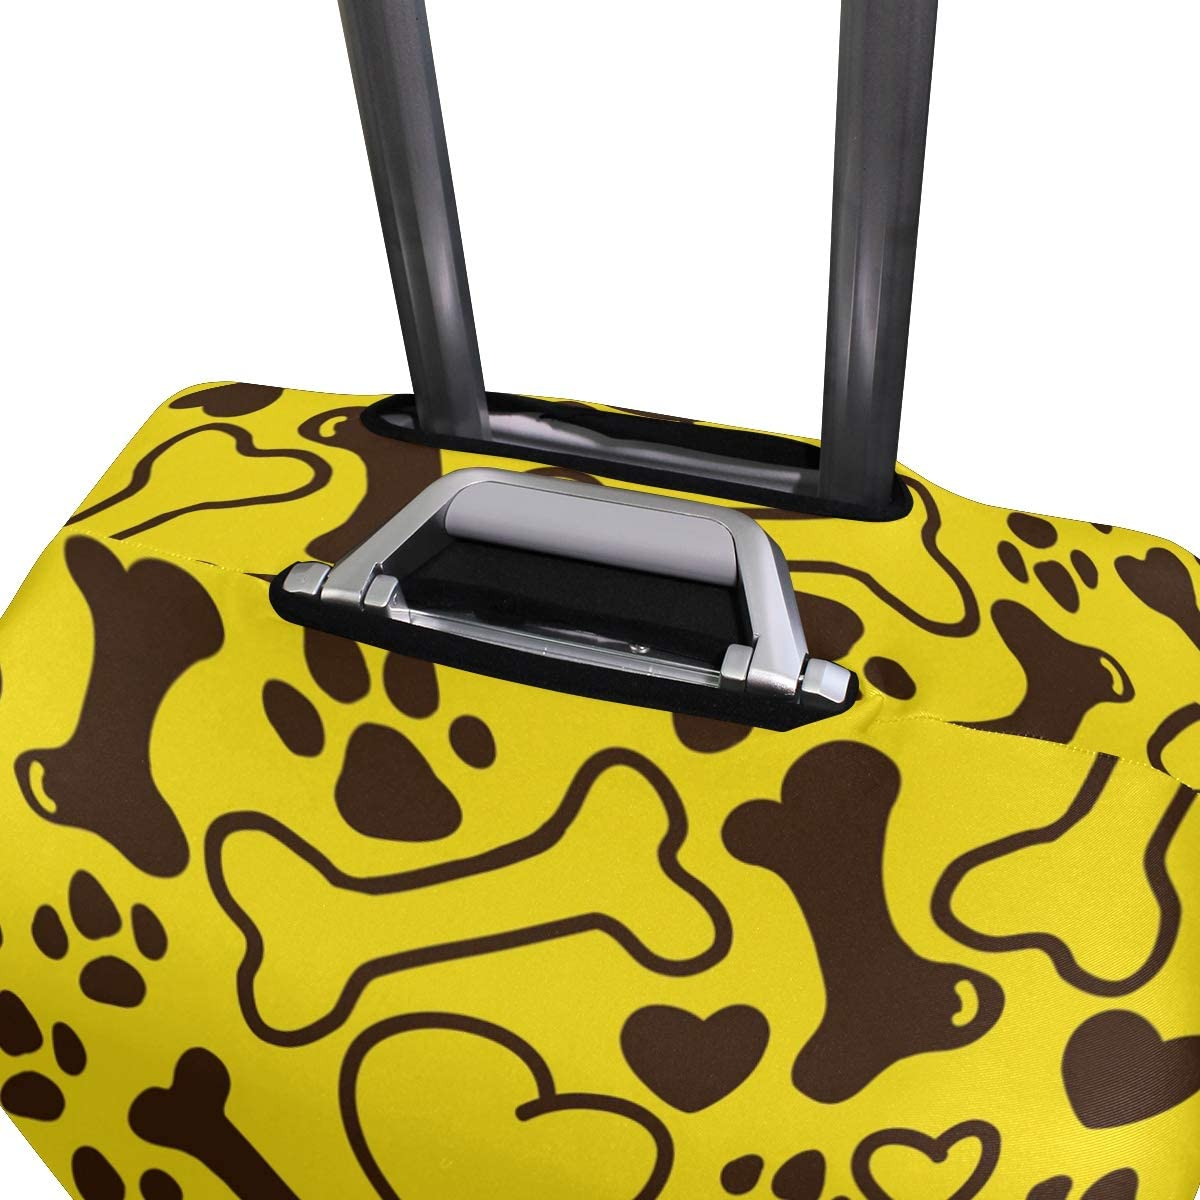 FOLPPLY Yellow Cartoon Bone Claw Heart Pattern Luggage Cover Baggage Suitcase Travel Protector Fit for 18-32 Inch